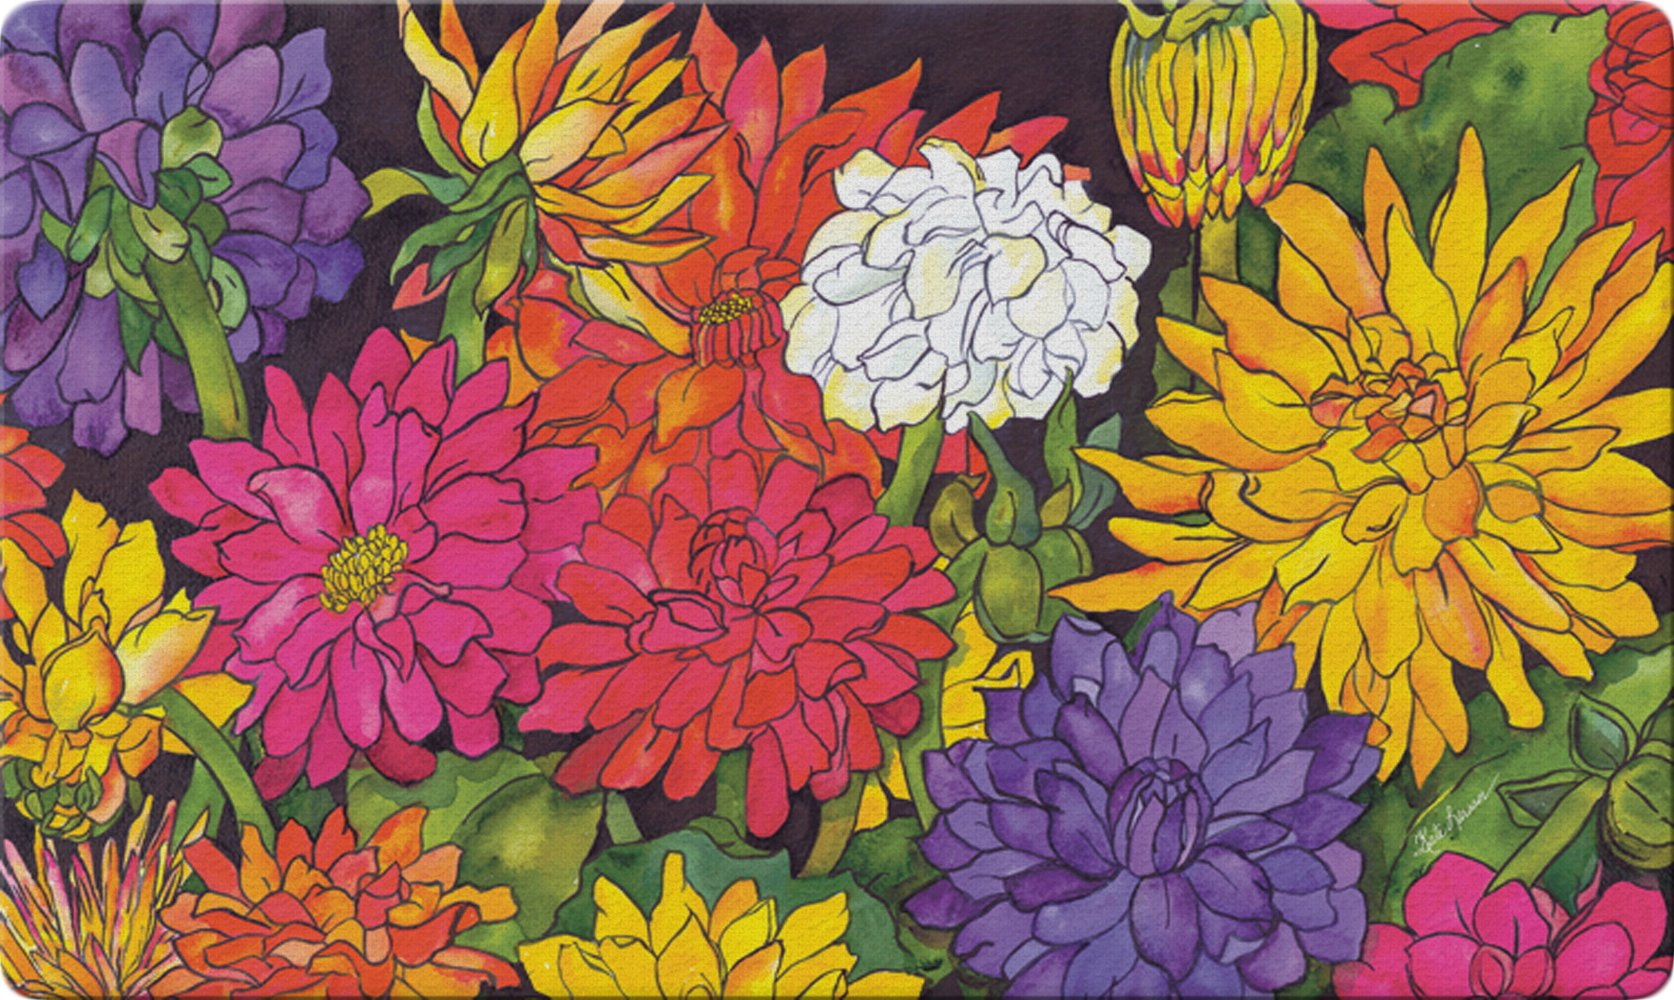 Toland Home Garden Dizzy Dahlias 18 x 30 Inch Decorative Floor Mat Flower Colorful Floral Bouquet Doormat